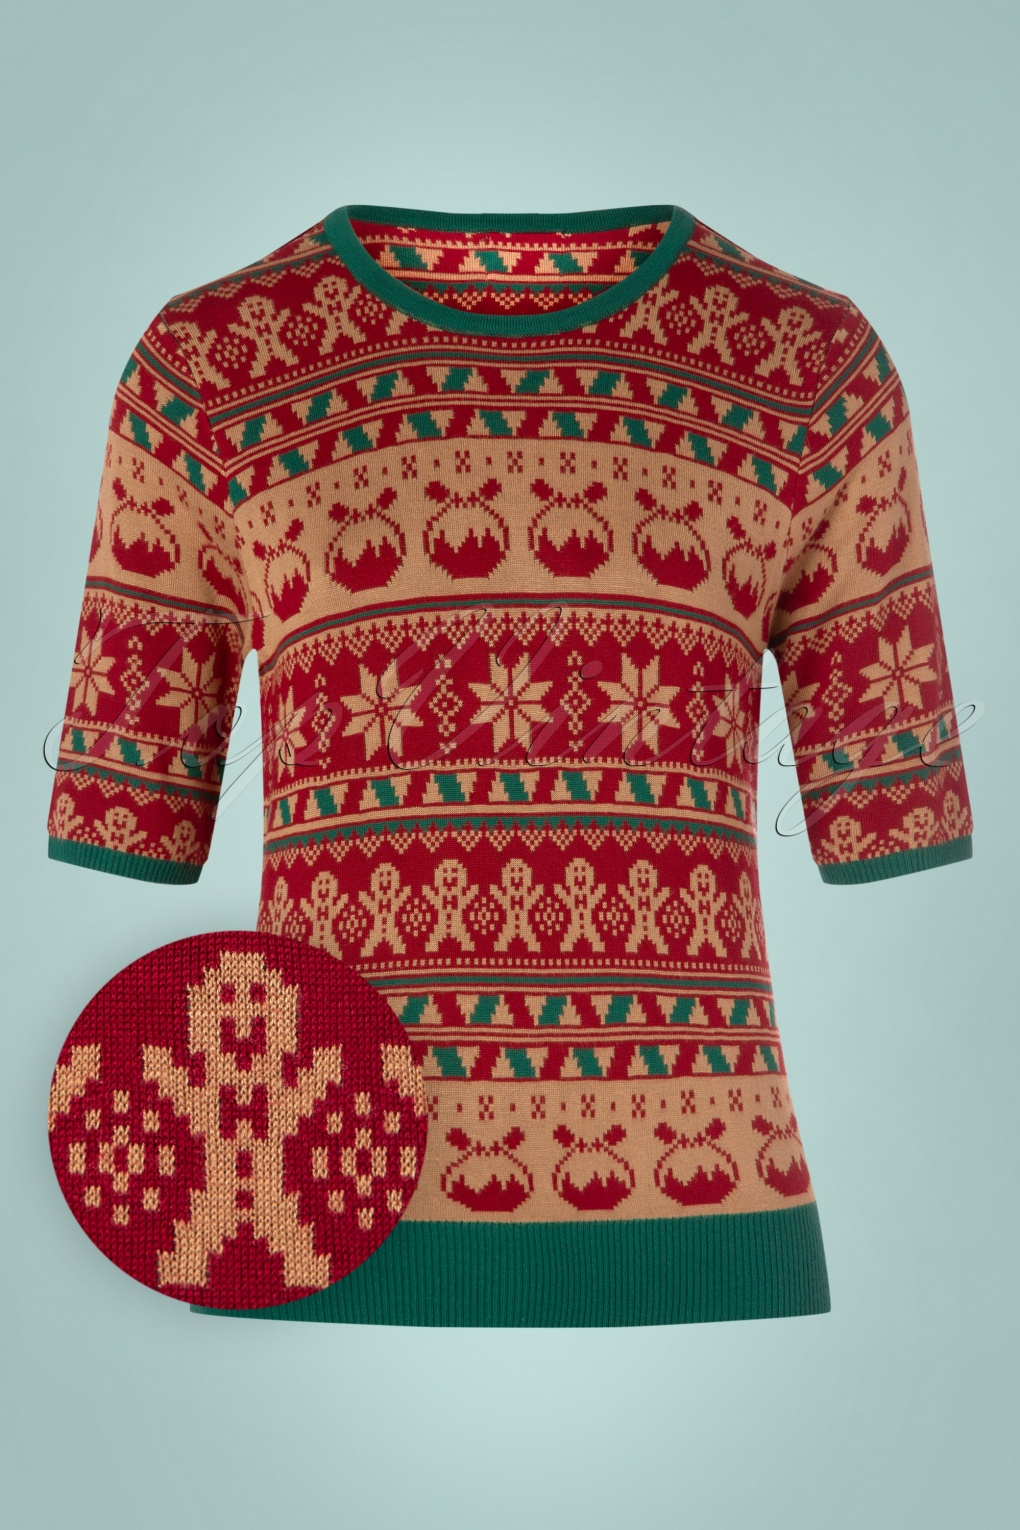 Vintage Christmas Gift Ideas for Women 50s Holly Jumper in Red and Green £37.39 AT vintagedancer.com